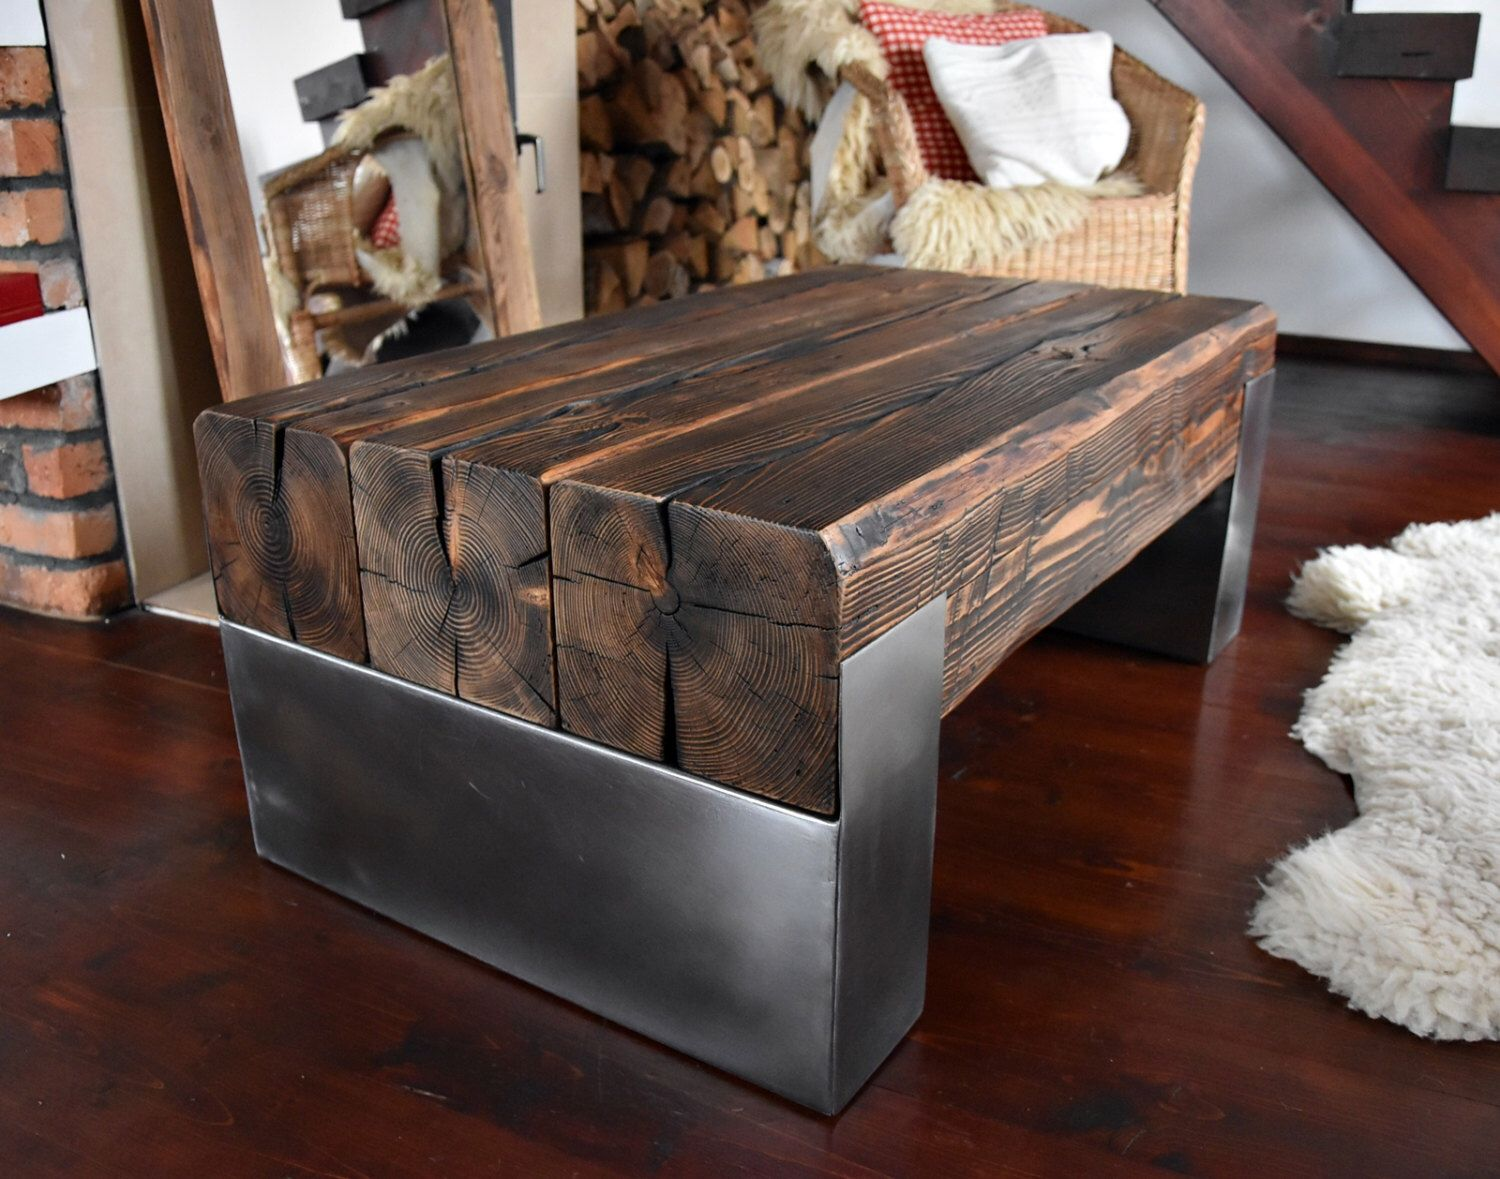 Handmade Reclaimed Wood & Steel Coffee Table Vintage Rustic